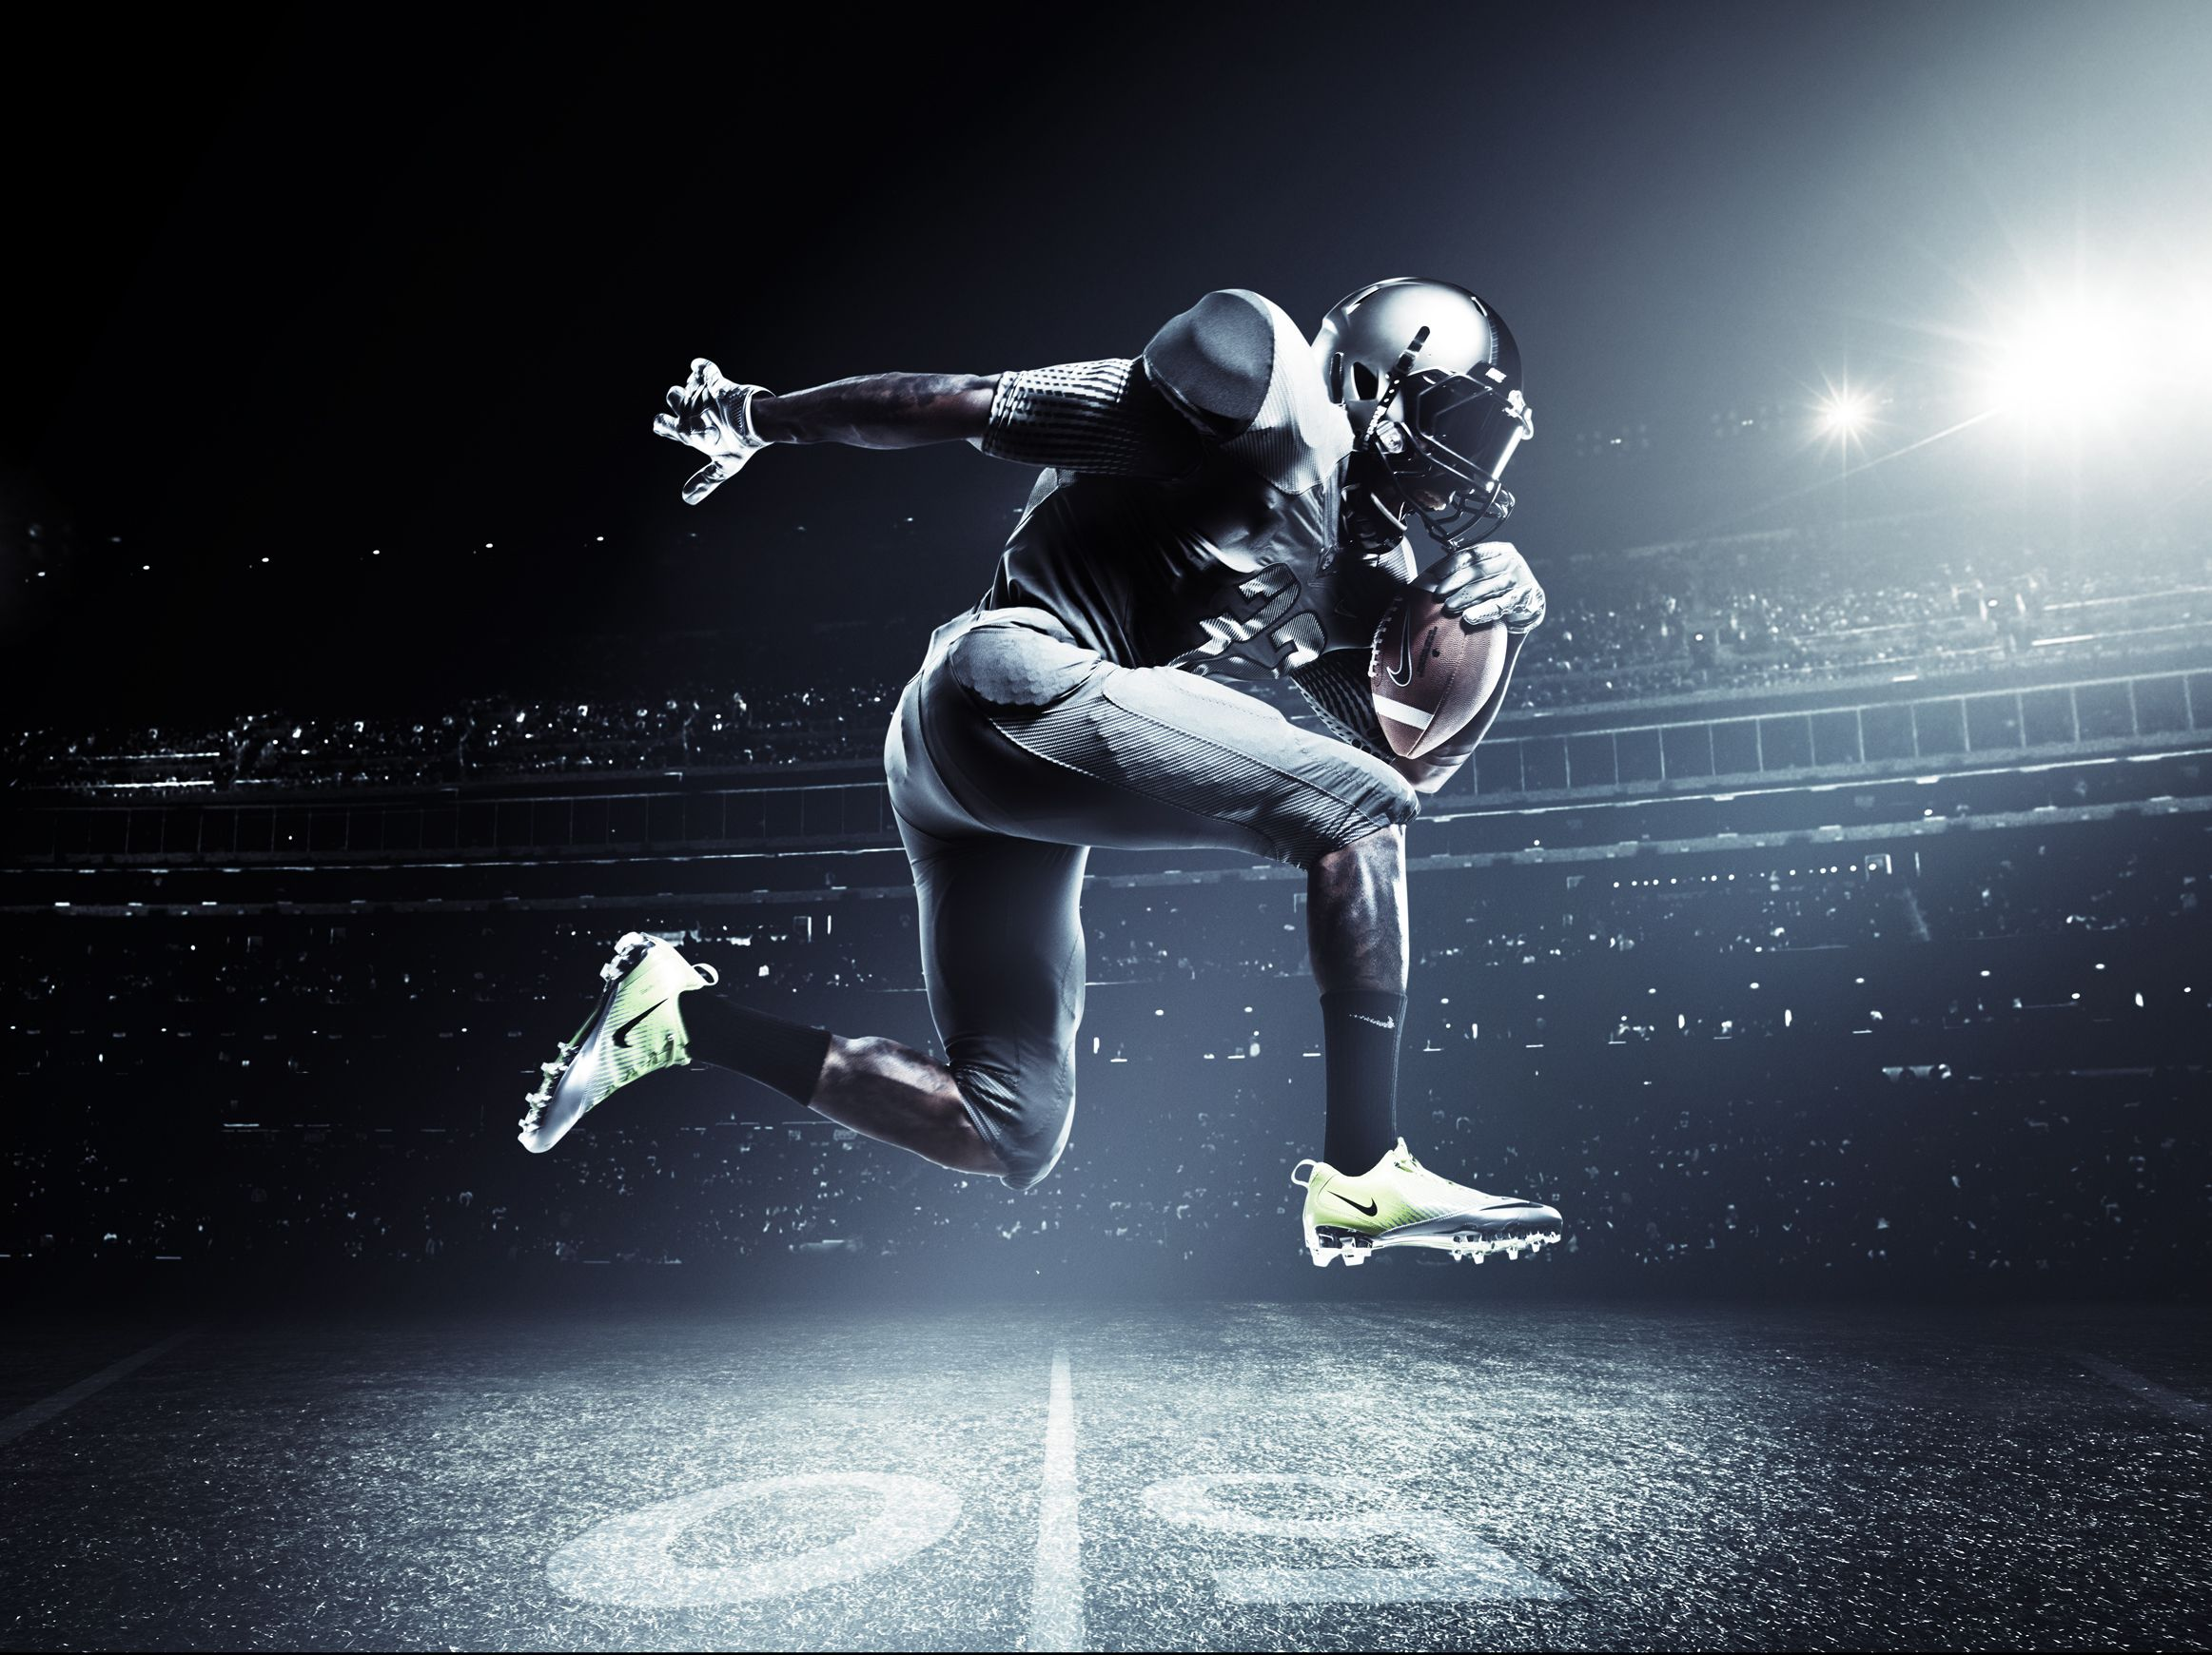 lighting...Find Sports & Athlete photo inspirations at ...